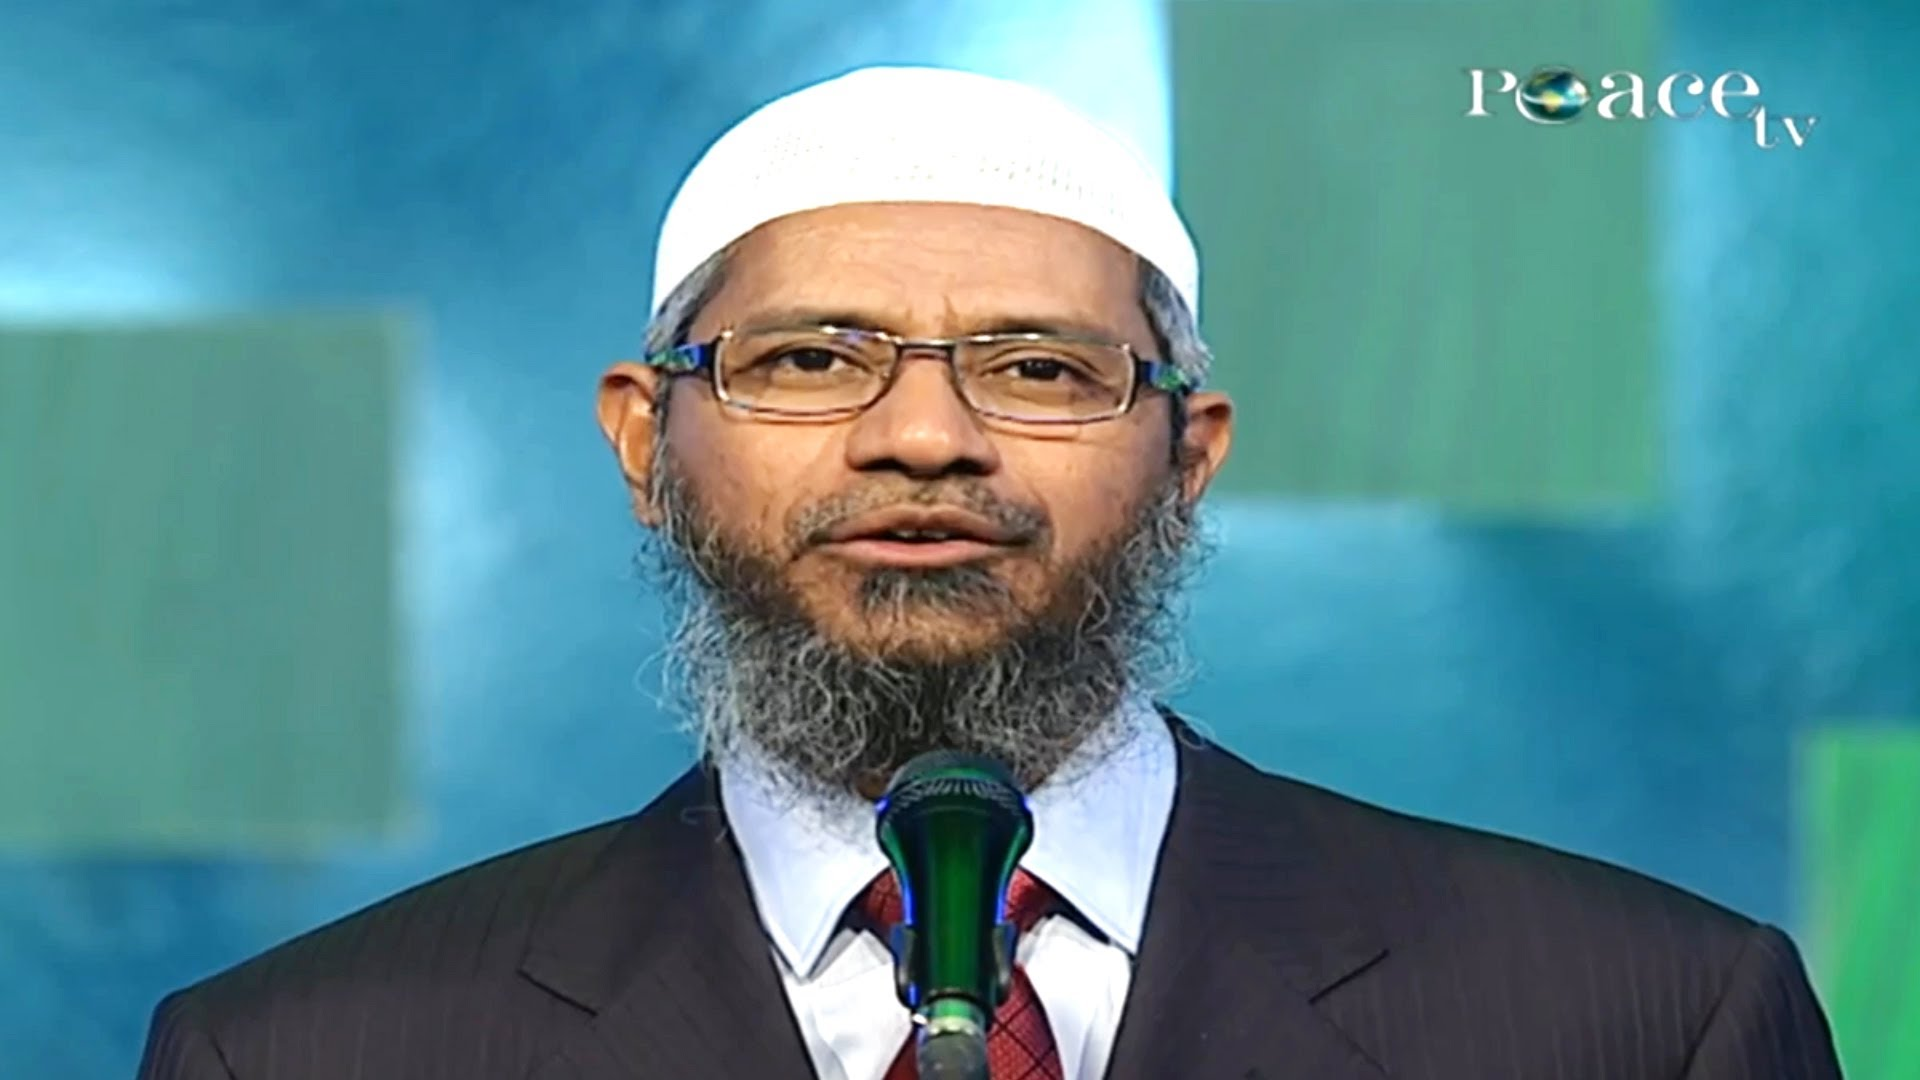 Zakir Naik ed nia Rs 18 crore Islamic Research Foundation